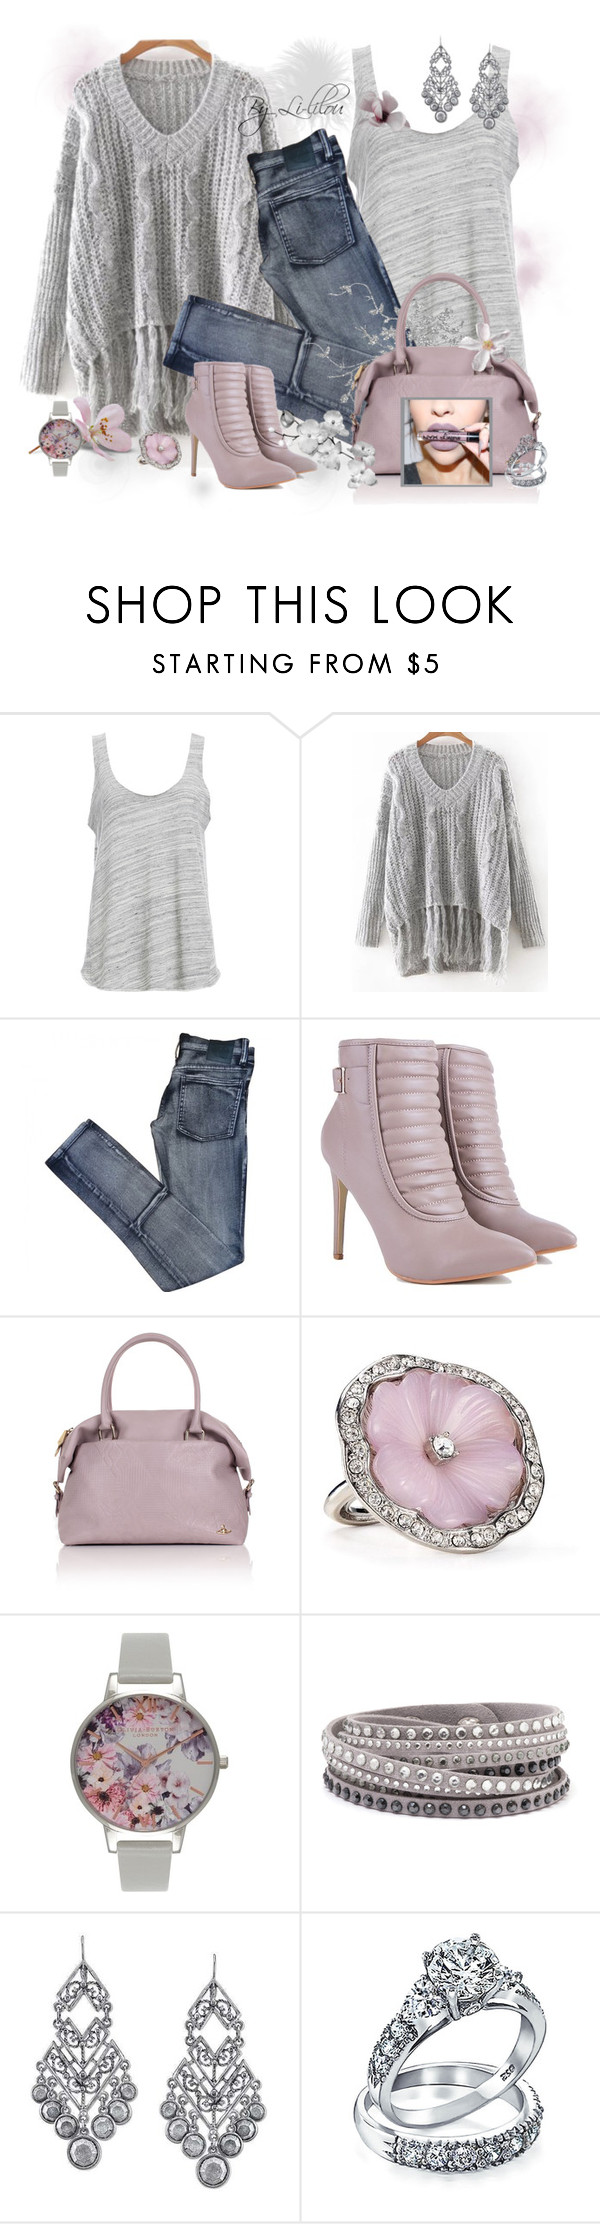 """""""Woman..."""" by li-lilou ❤ liked on Polyvore featuring Project Social T, Cheap Monday, Vivienne Westwood, Kenneth Jay Lane, Olivia Burton, NYX, 1928 and Bling Jewelry"""